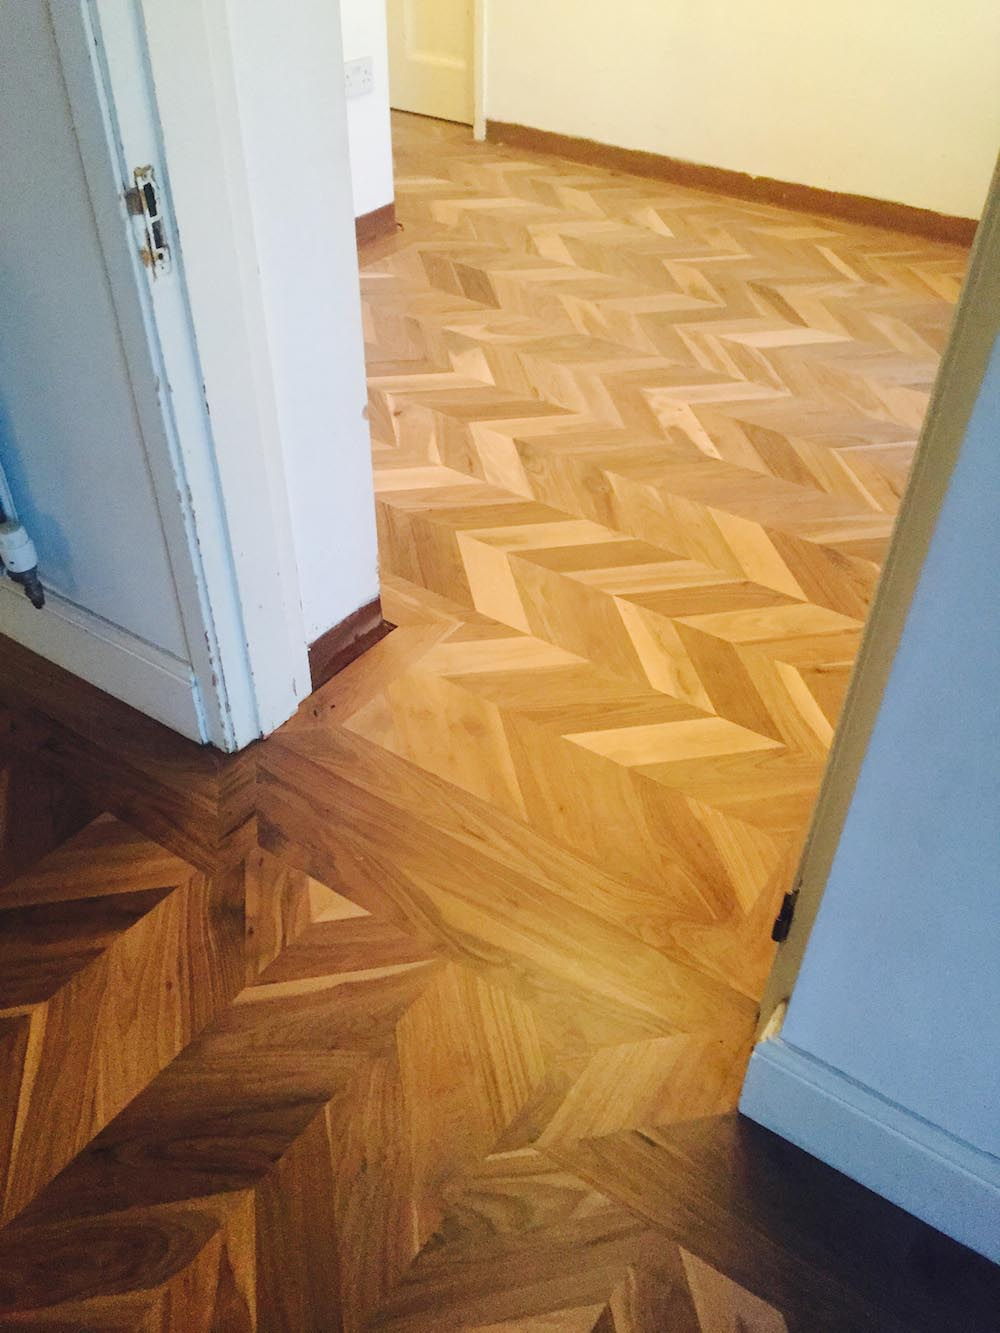 E932 Walnut Chevron in a house